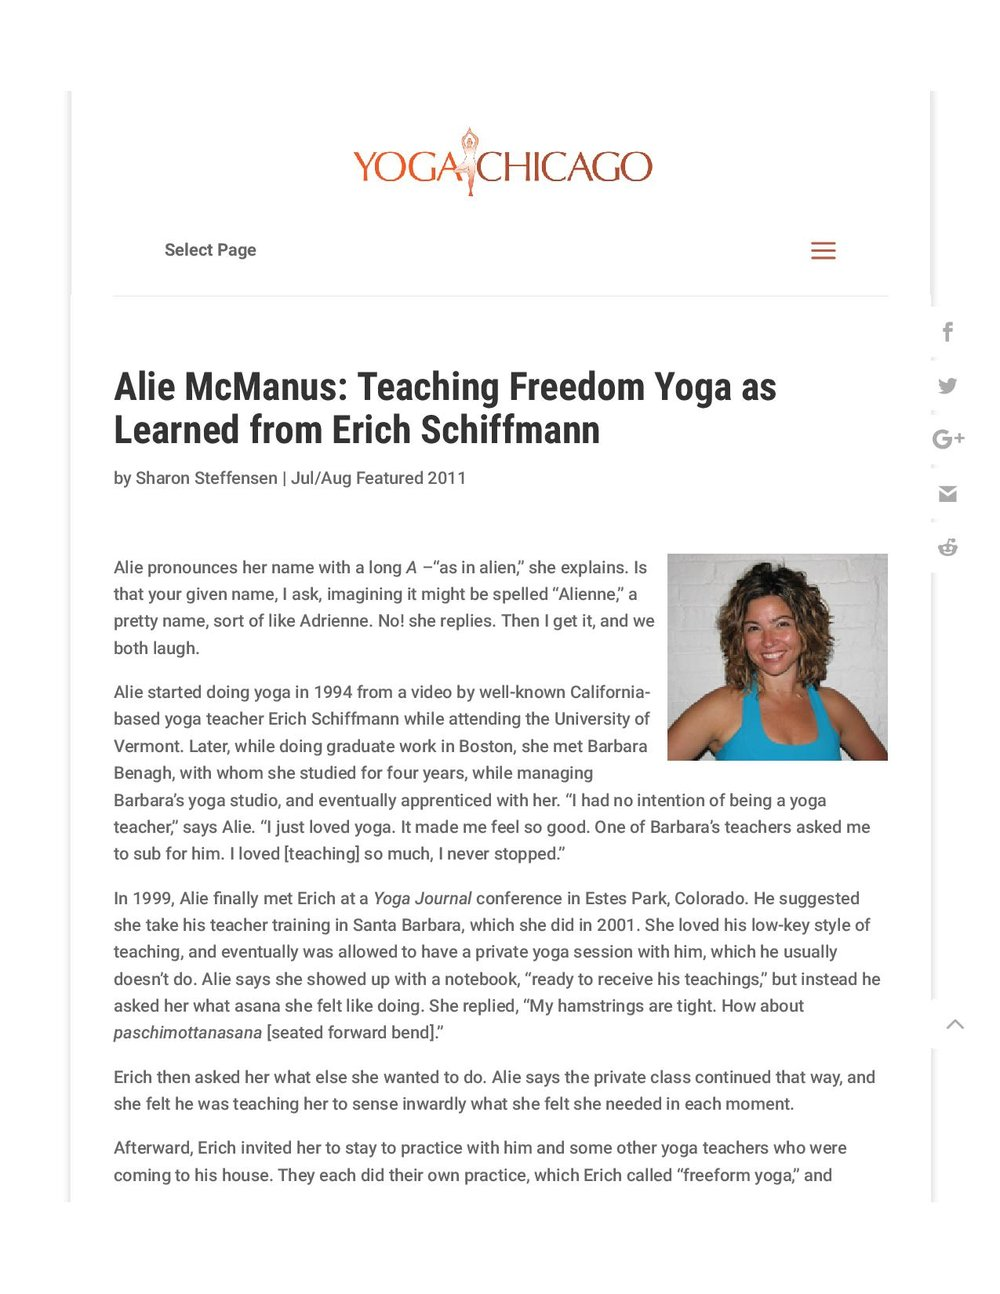 Alie McManus_ Teaching Freedom Yoga as Learned from Erich Schiffmann _ Yoga Chicago-page-001.jpg